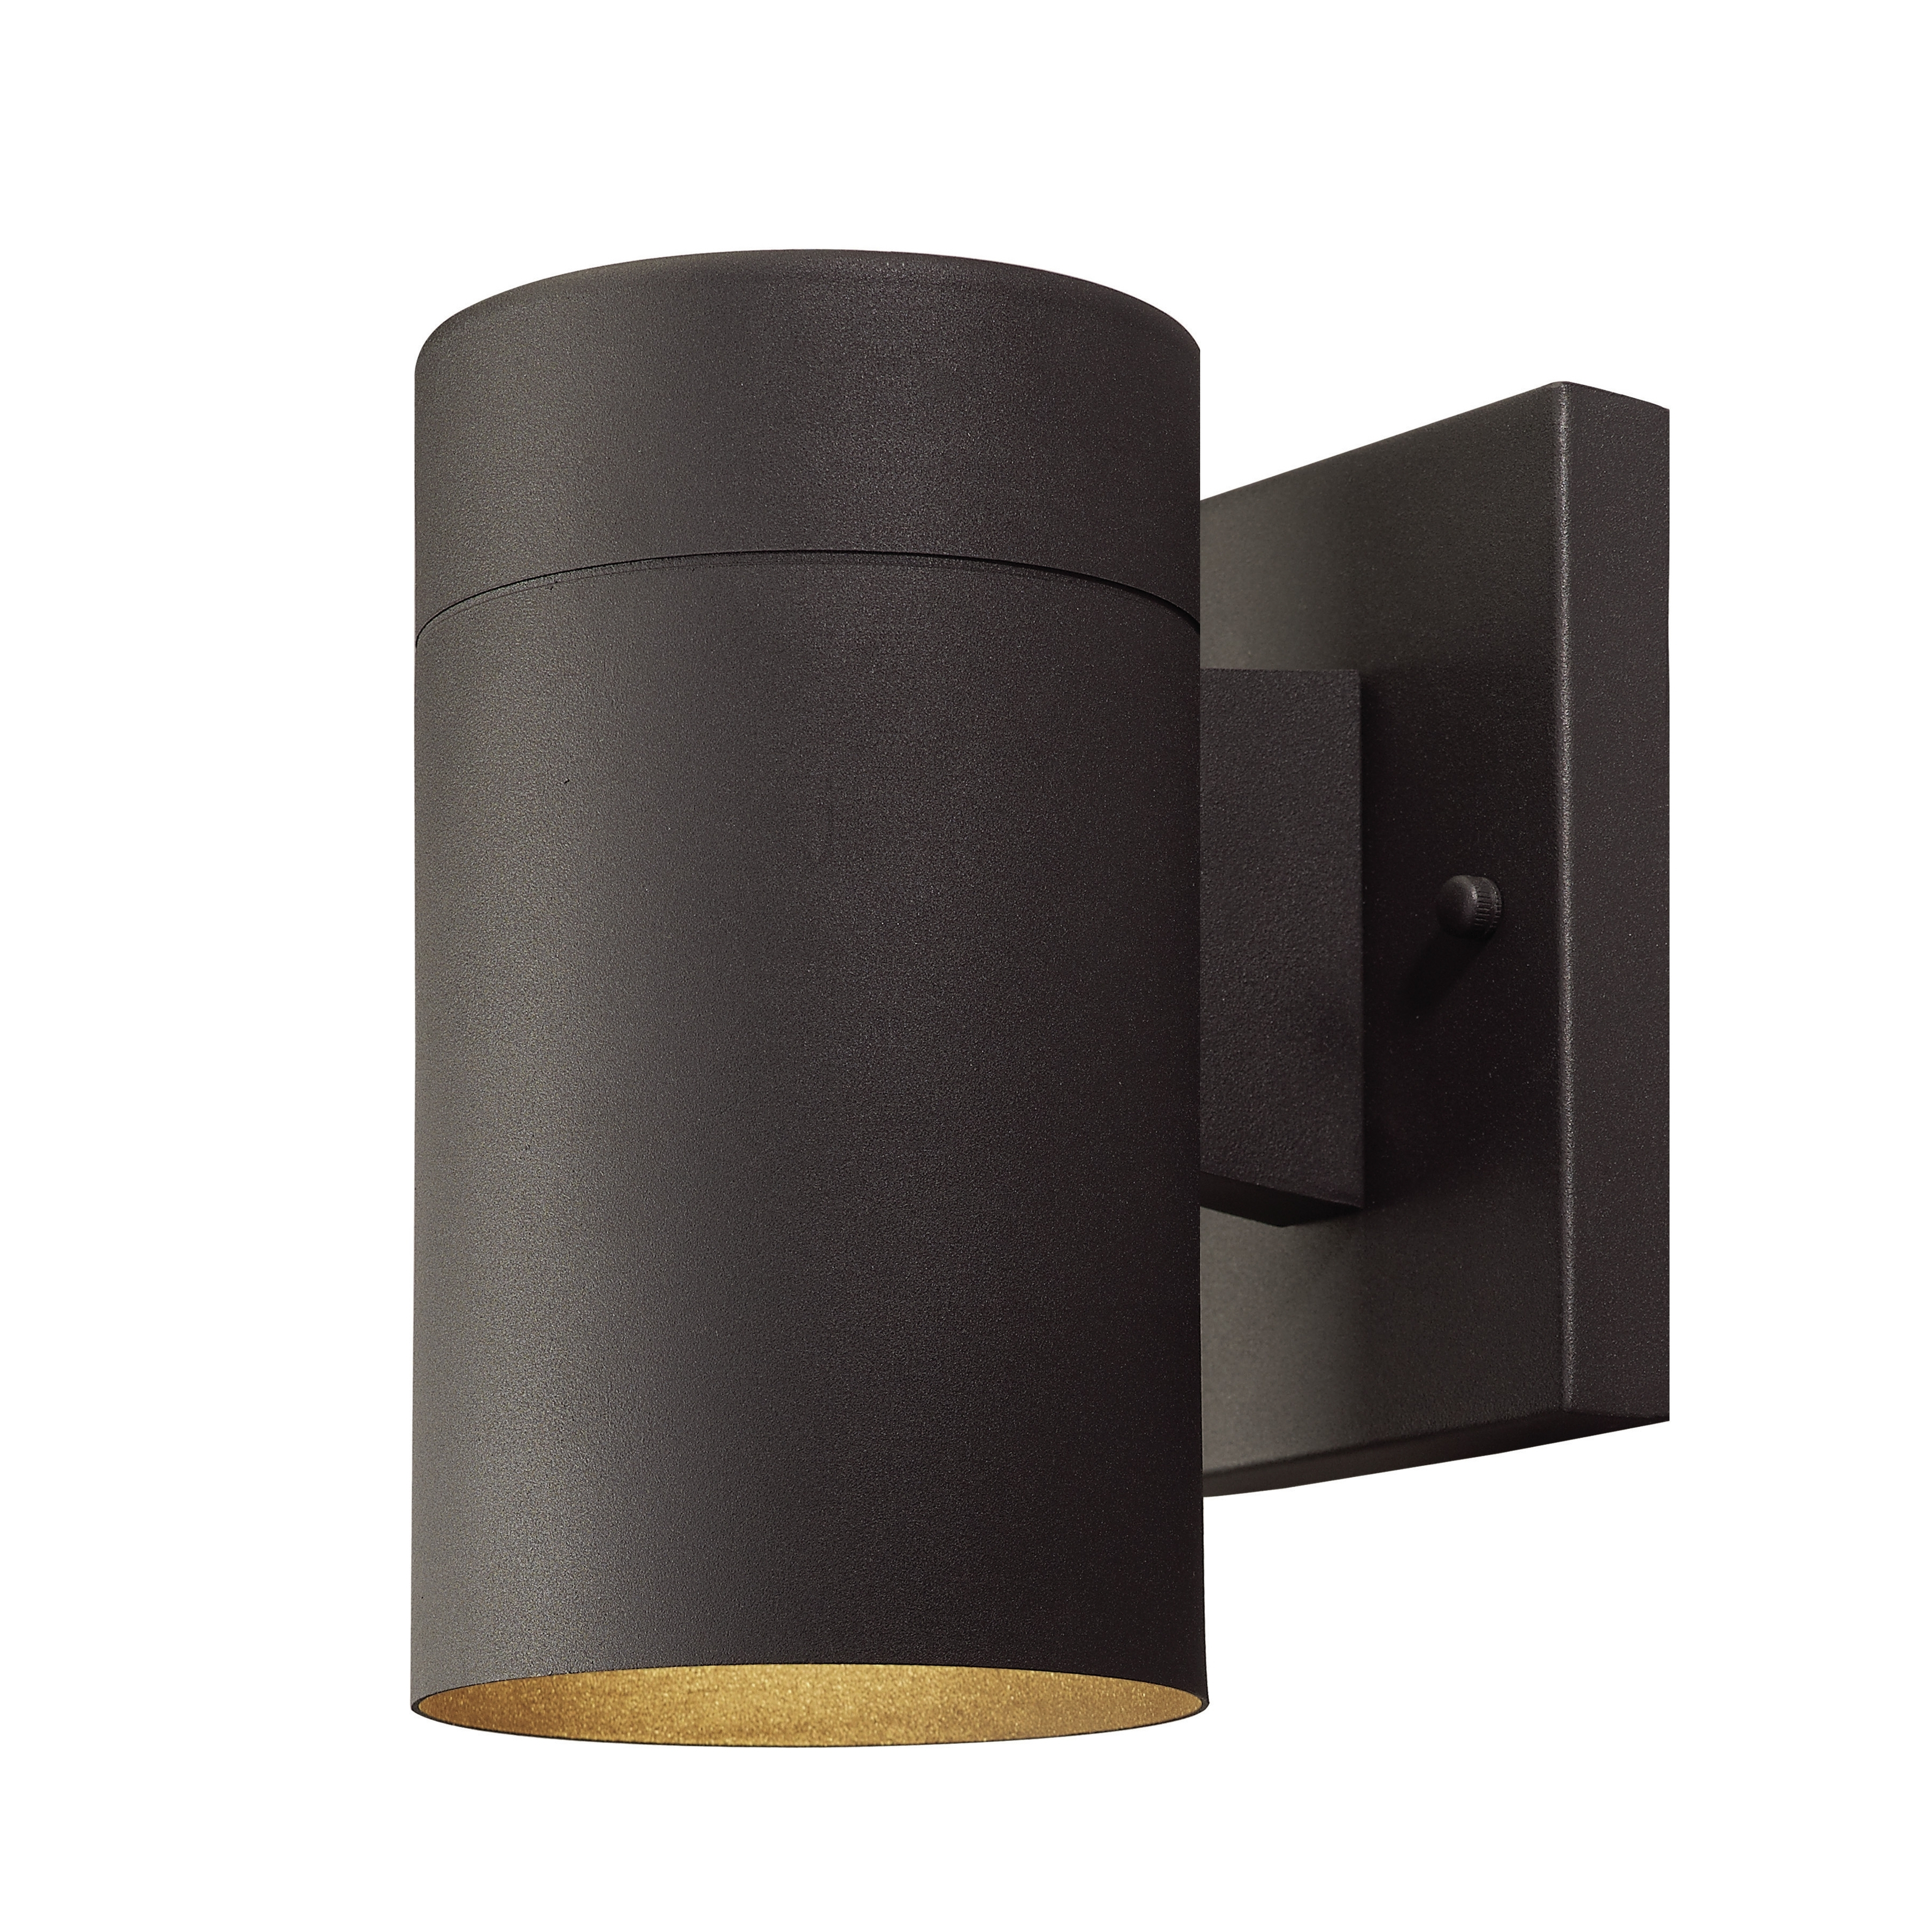 Contemporary Rustic Outdoor Lighting At Wayfair Throughout 2019 Maxim 54362Clabz Civic Contemporary Architectural Bronze Led (View 5 of 20)